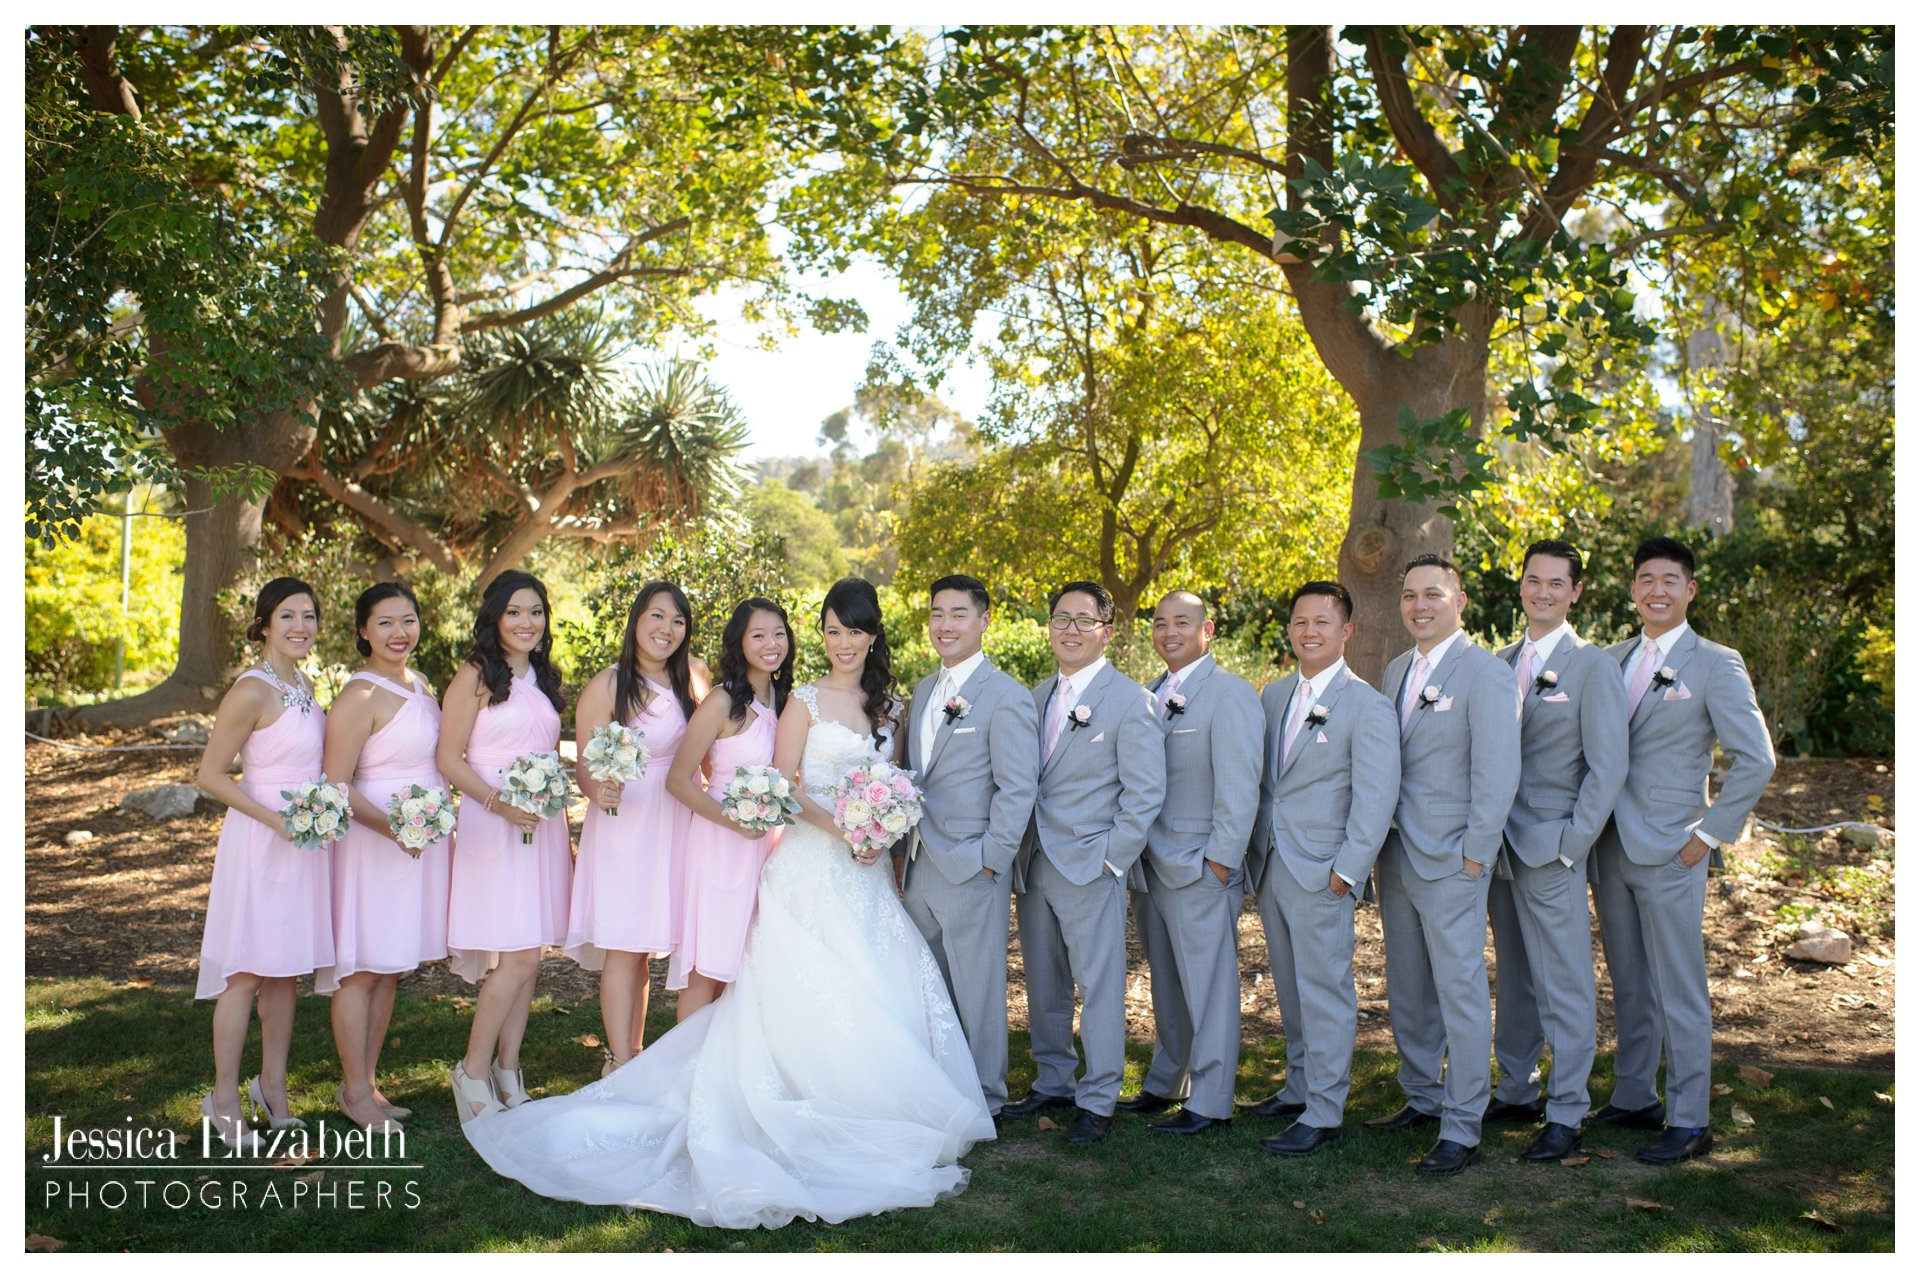 06-South Coast Botanic Garden Palos Verdes Wedding Photography by Jessica Elizabeth